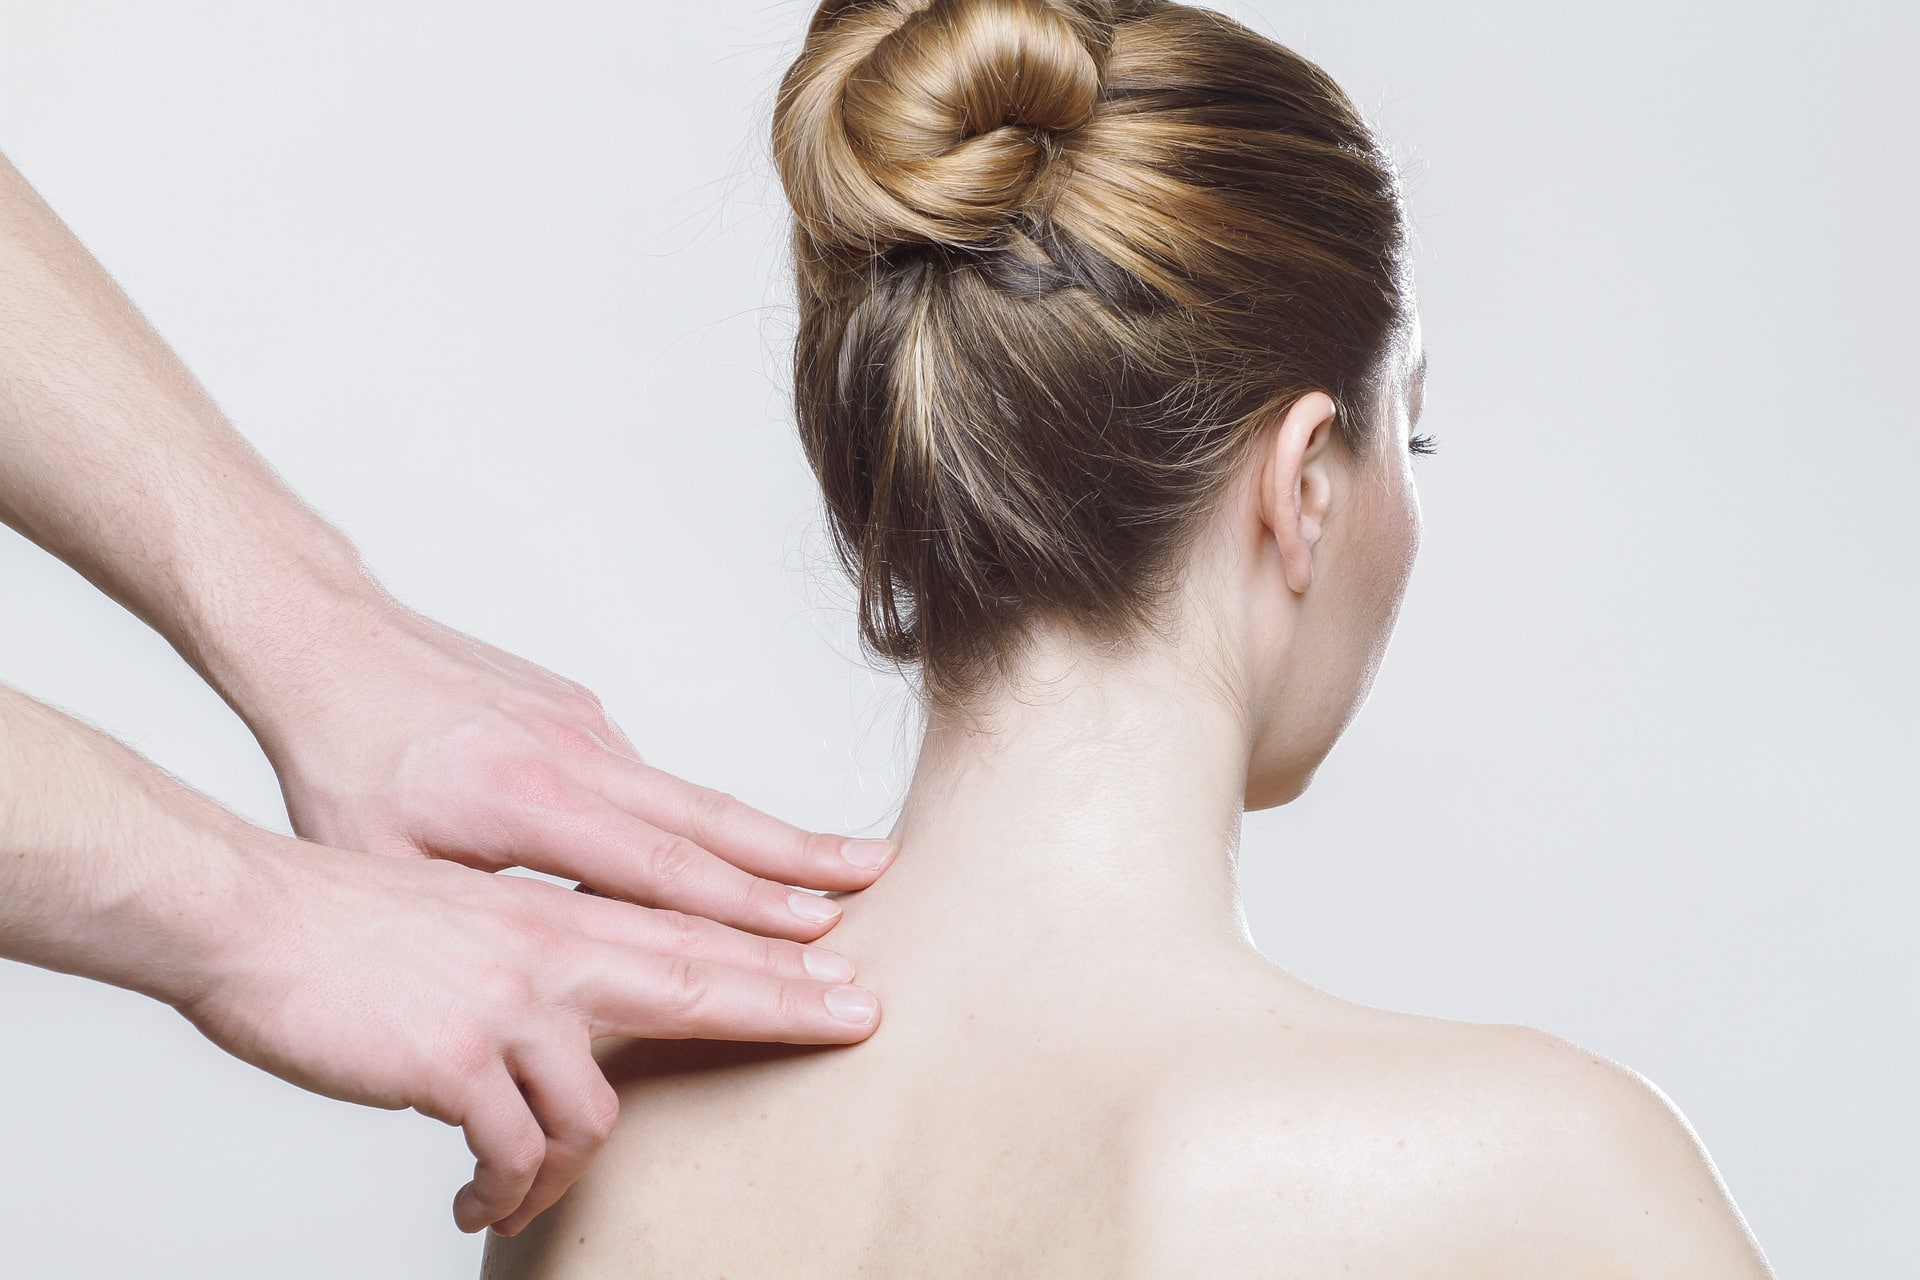 physical therapist treating shoulder pain